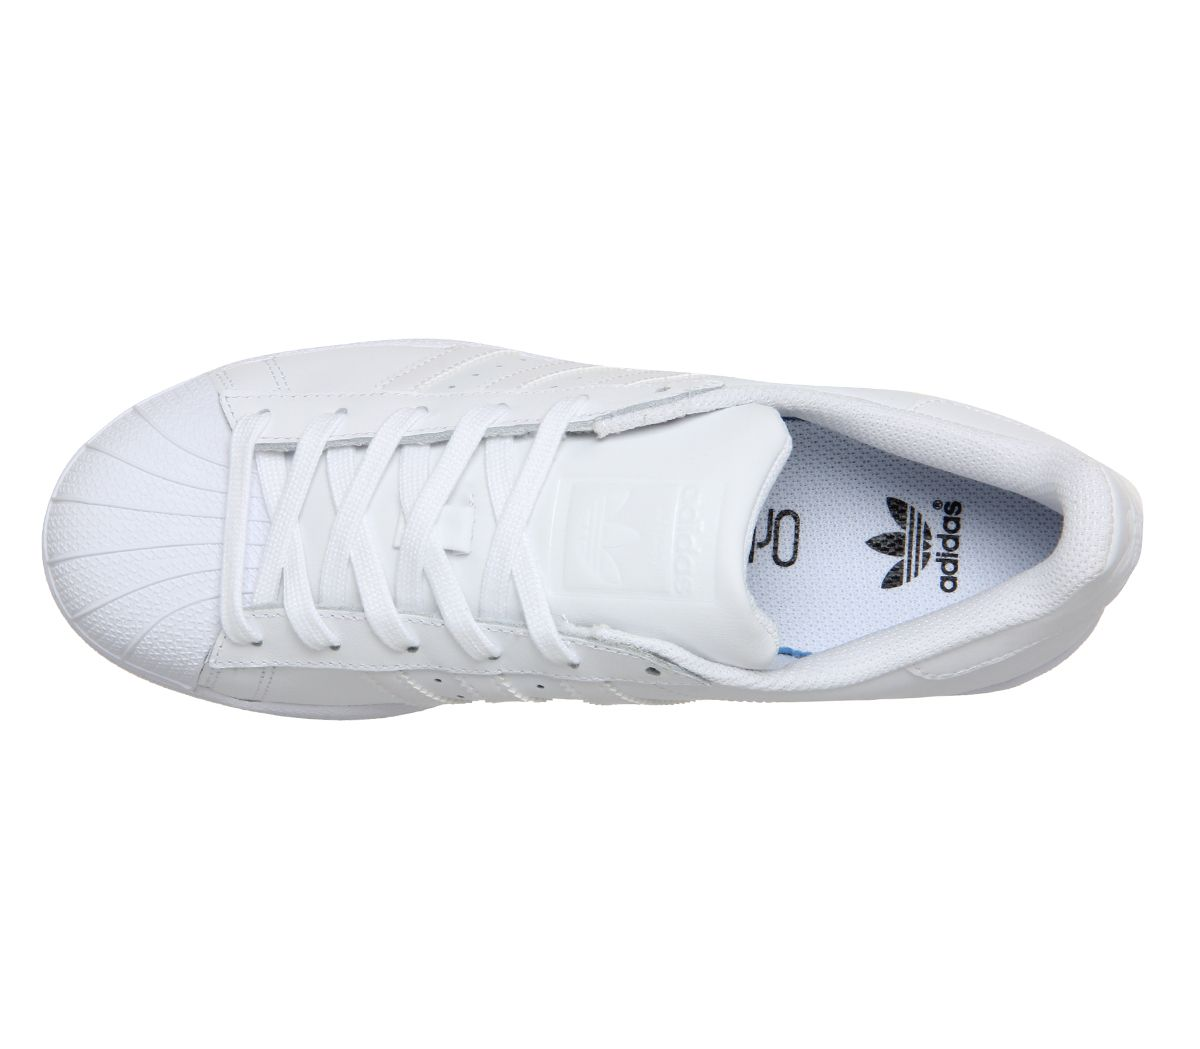 Details about Womens Adidas Superstar Trainers White Mono Foundation Trainers Shoes